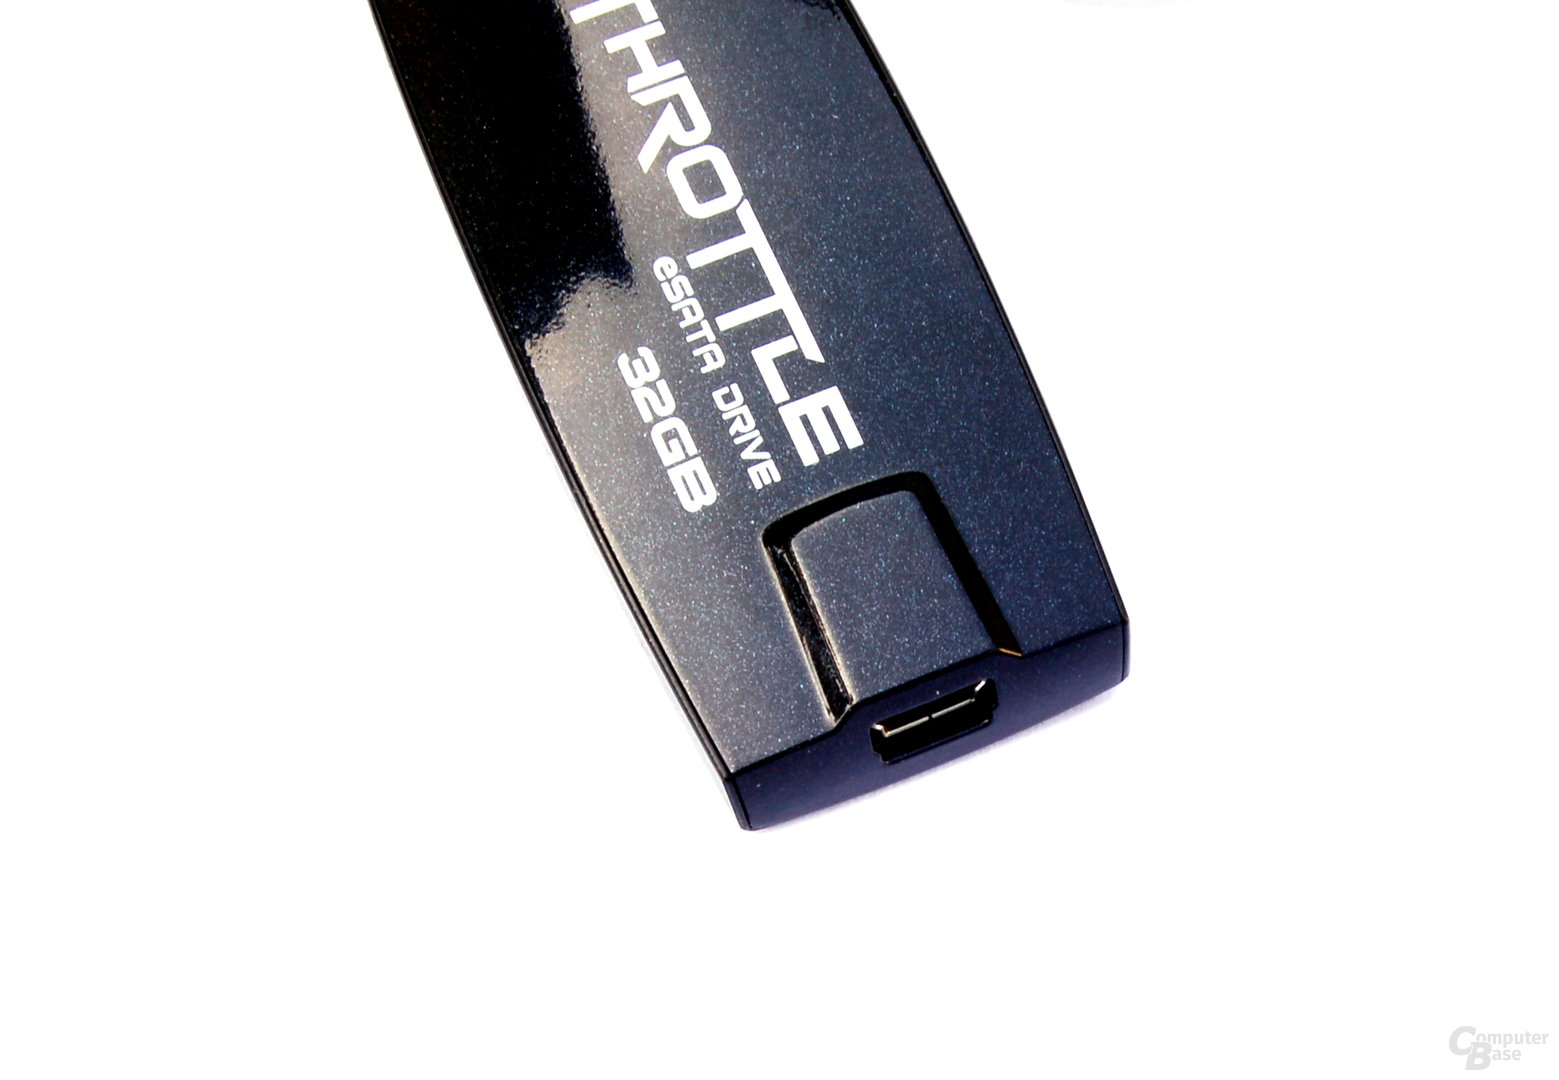 Mini-USB-Port des OCZ Throttle